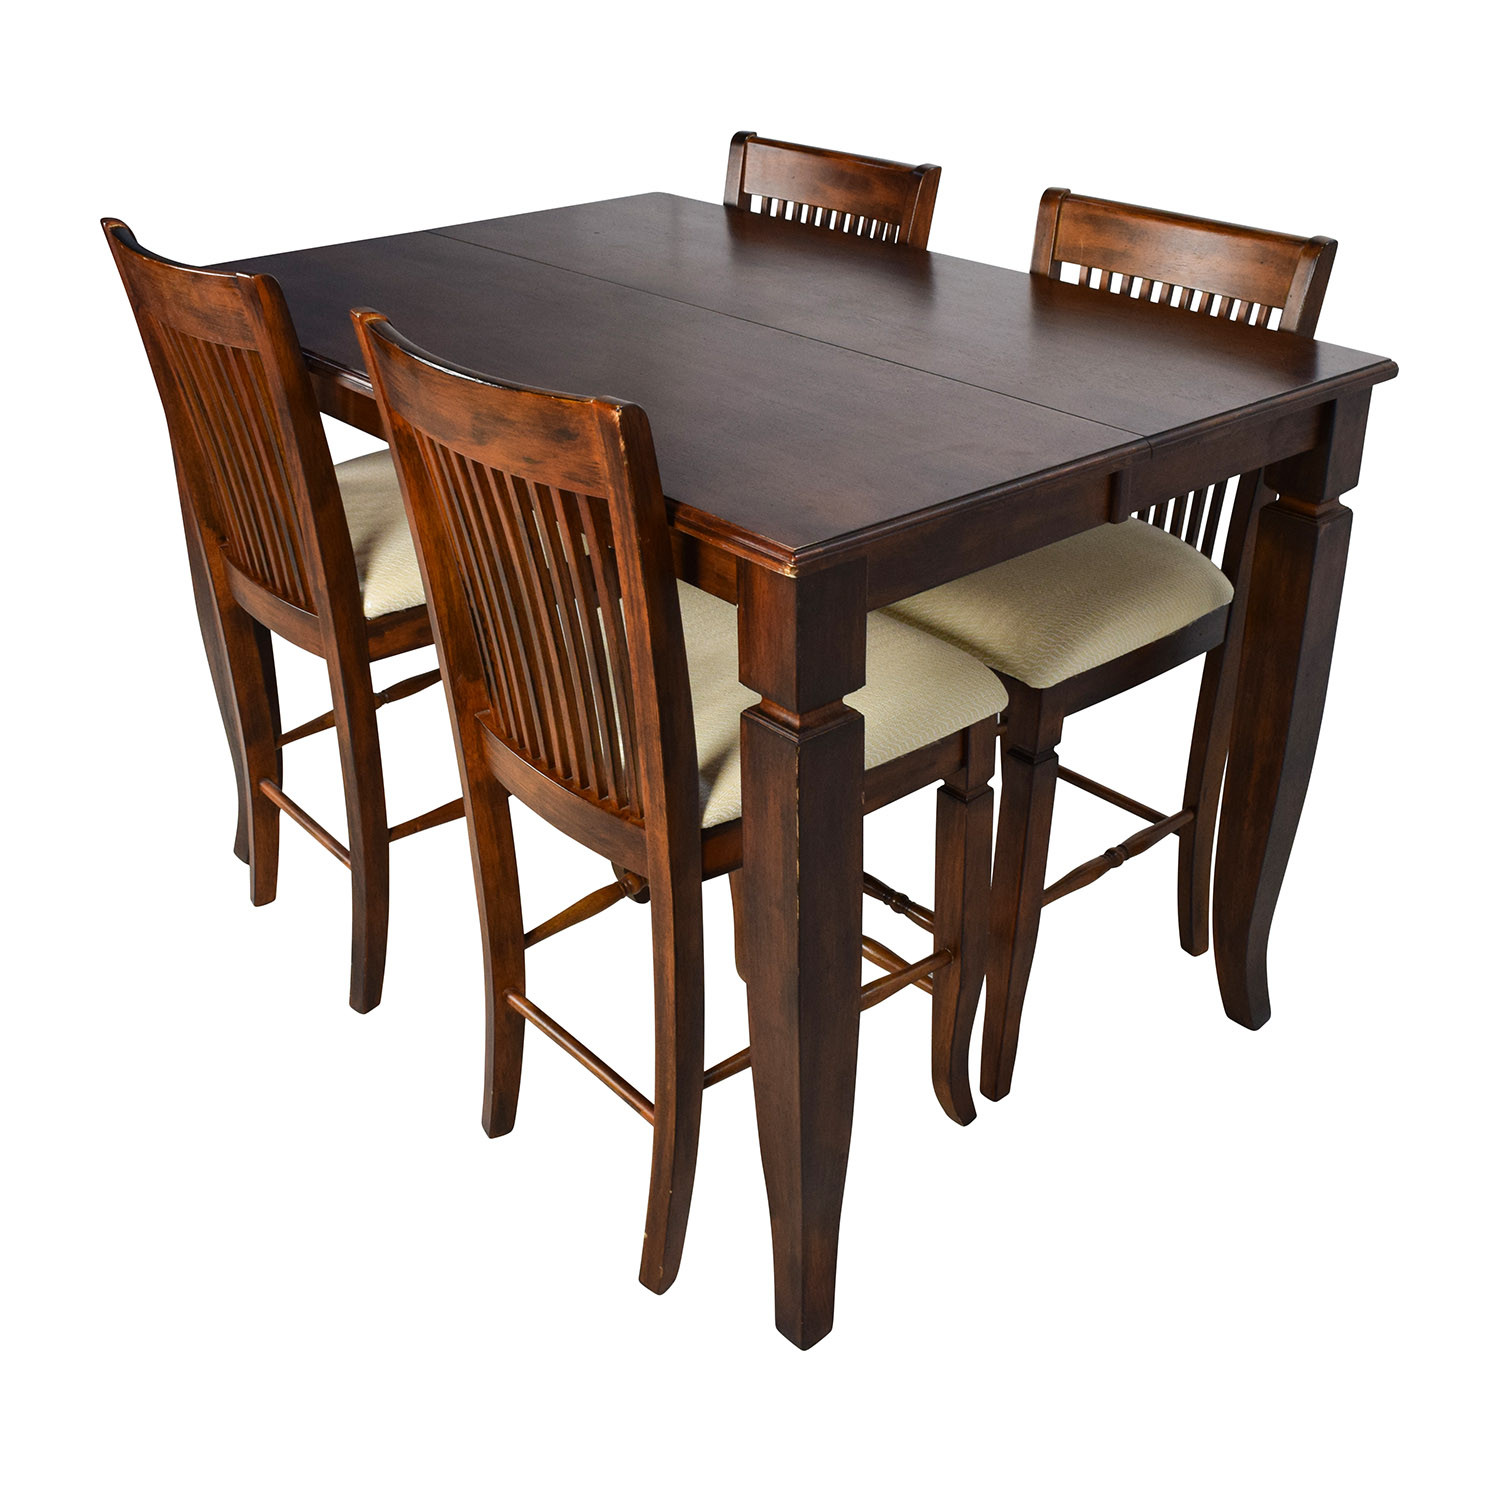 Best ideas about Tall Dining Table . Save or Pin OFF Tall Extendable Dining Room Table Set Tables Now.